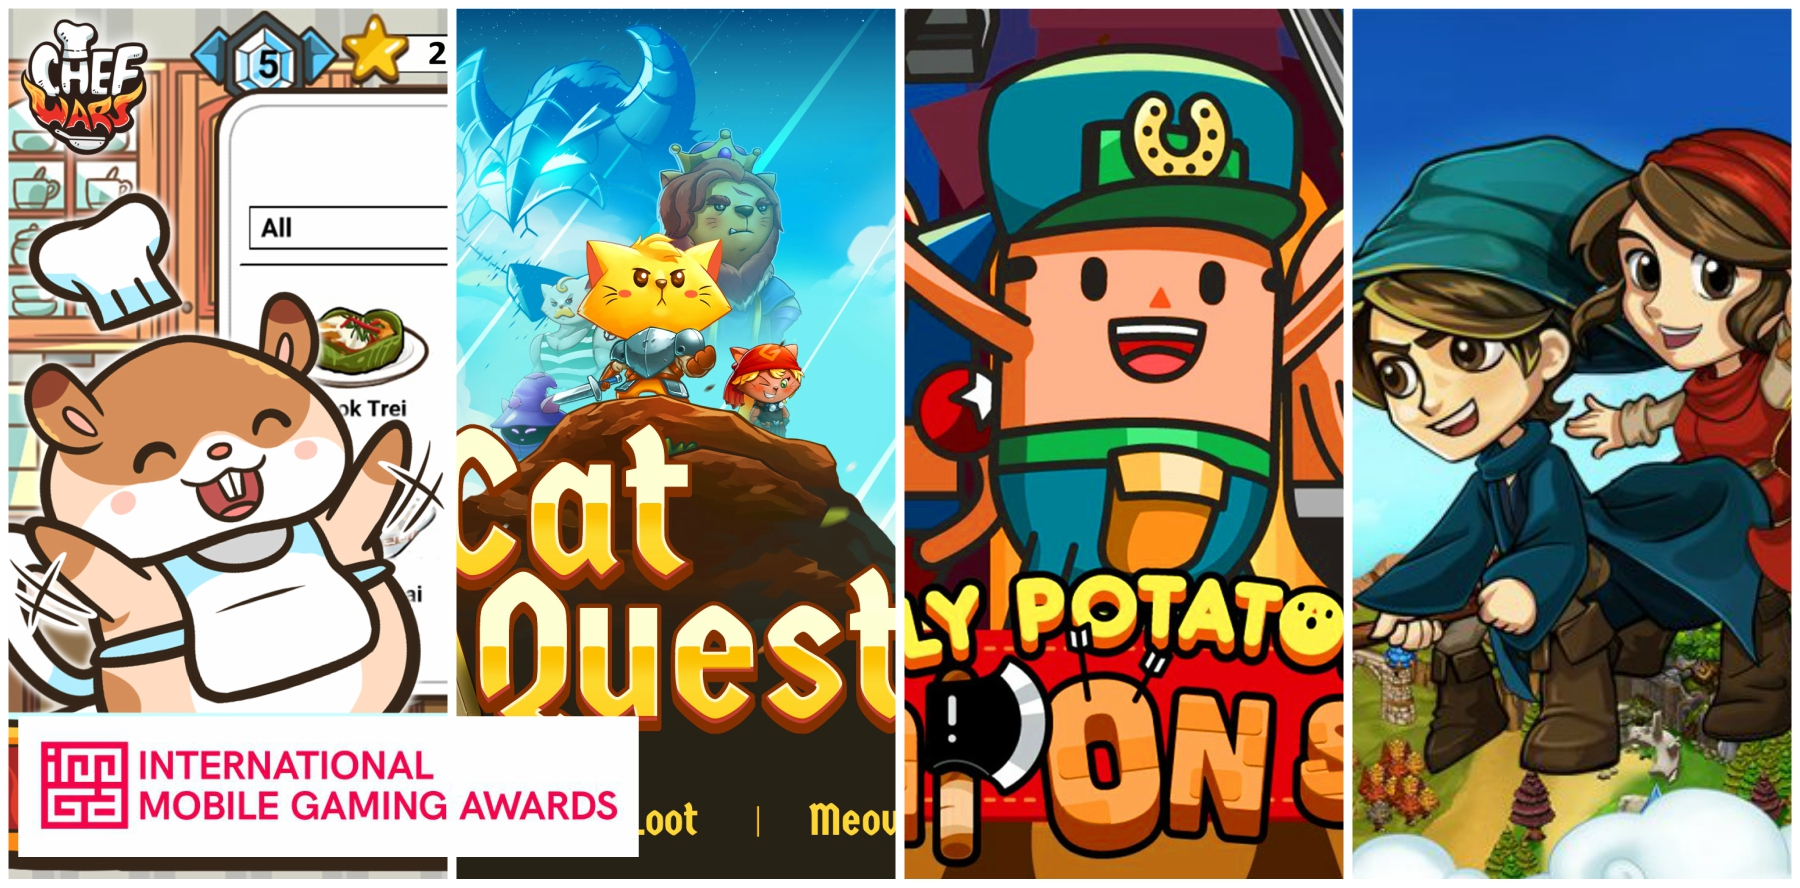 IMGA SEA 2017 Nominees, Singapore, Indie Mobile Game Awards